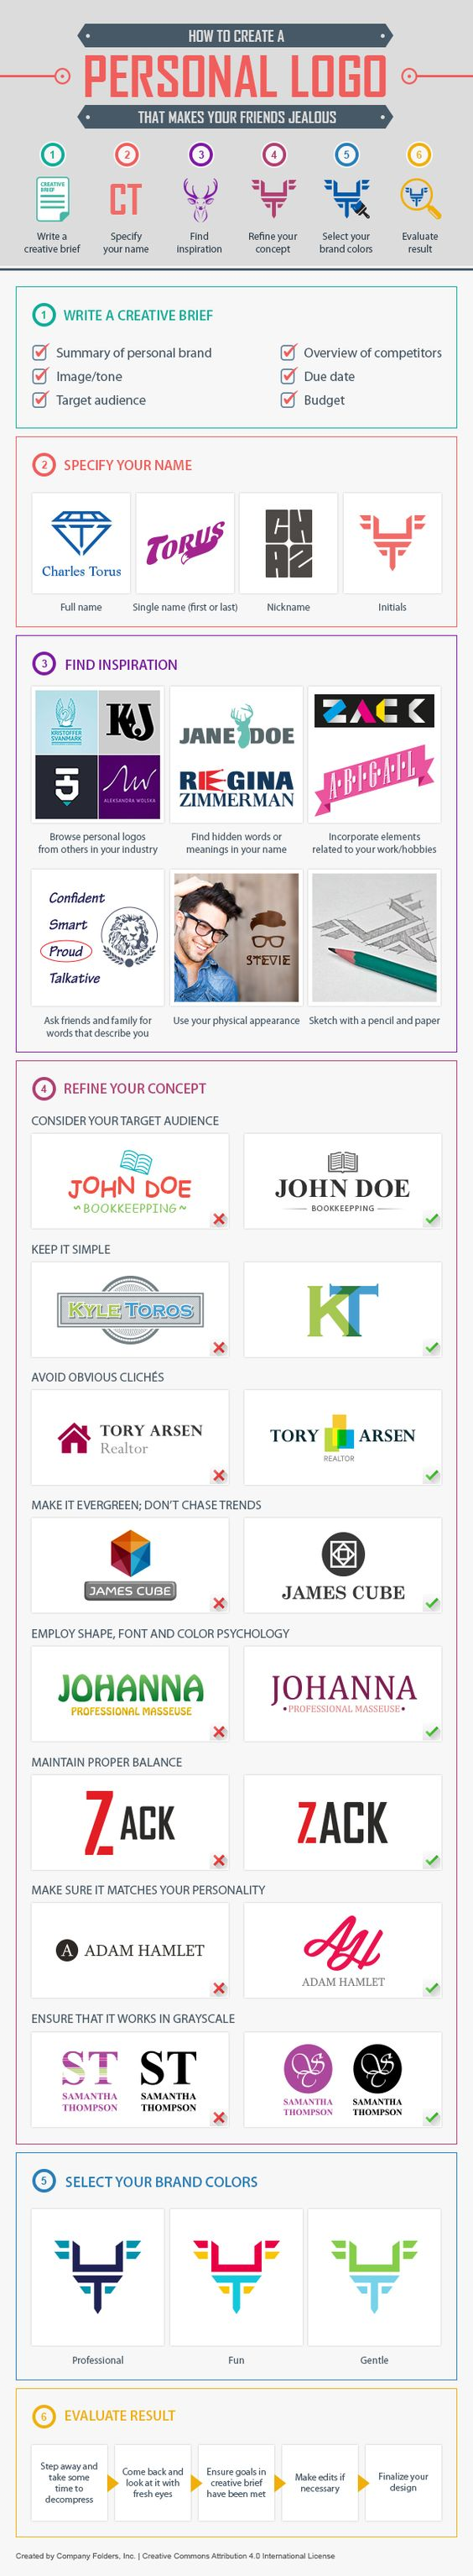 How to Create a Personal Logo That Makes Your Friends Jealous - Tipsographic